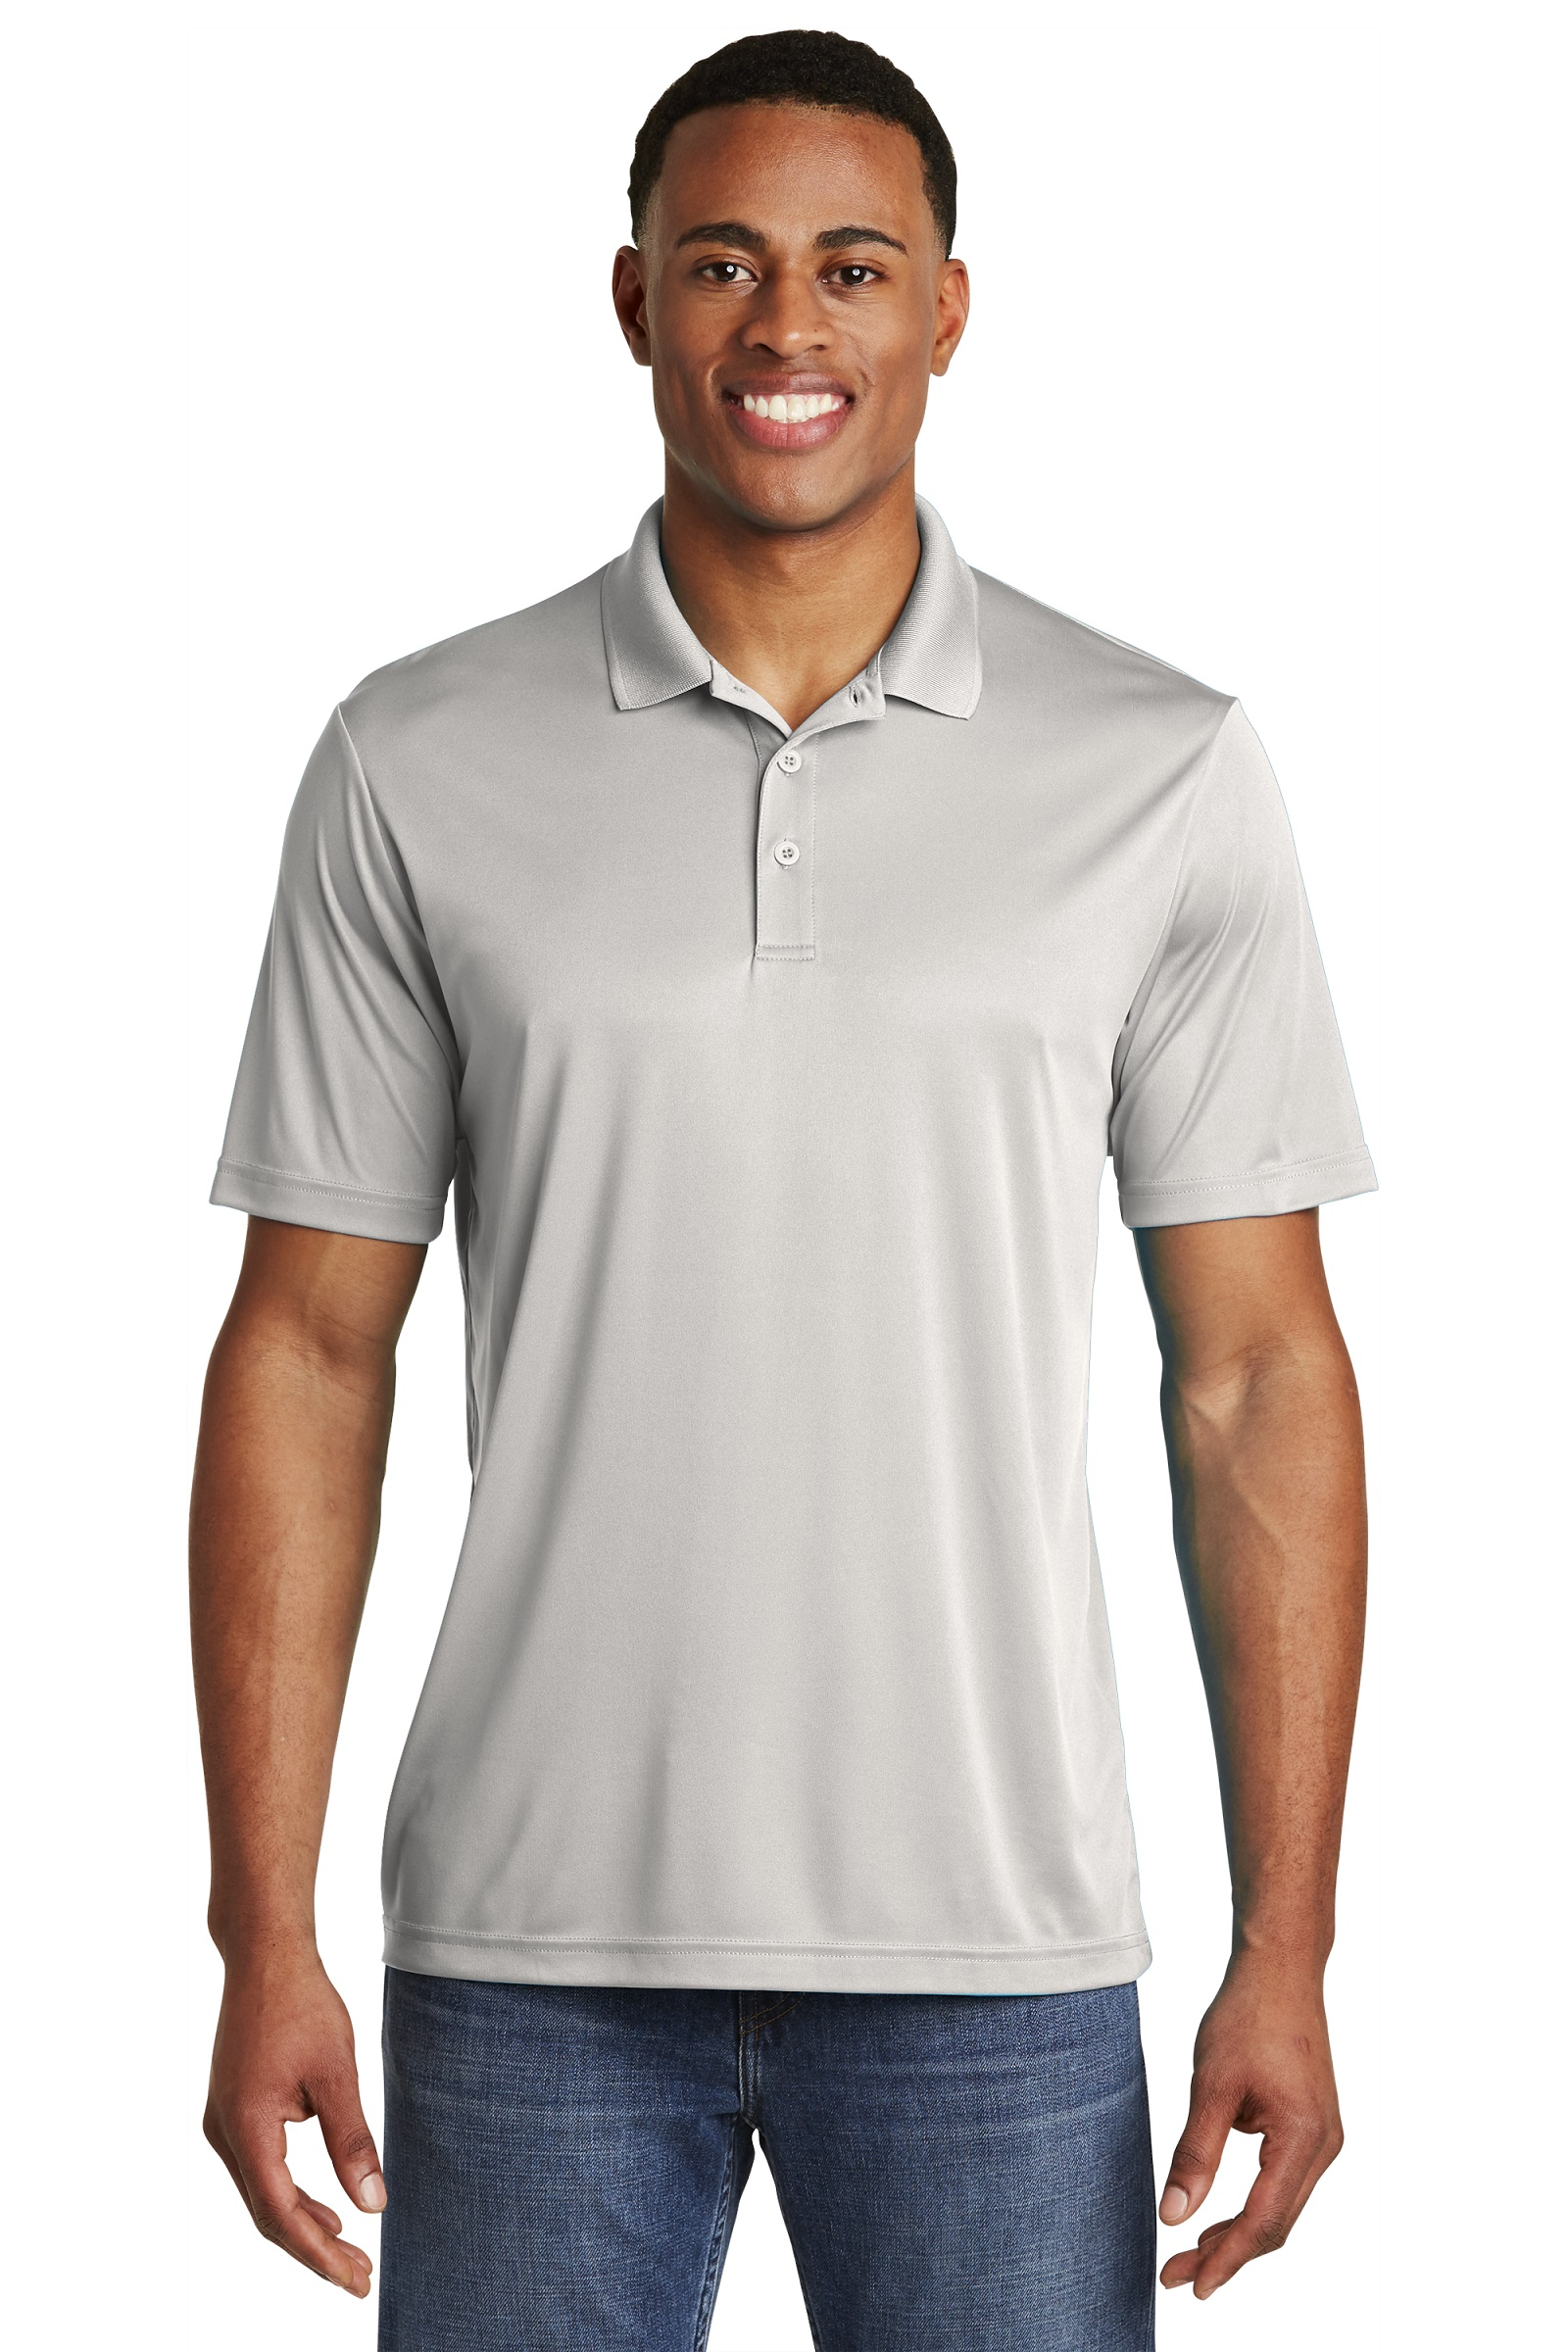 Sport-Tek Embroidered Men's PosiCharge Competitor Polo